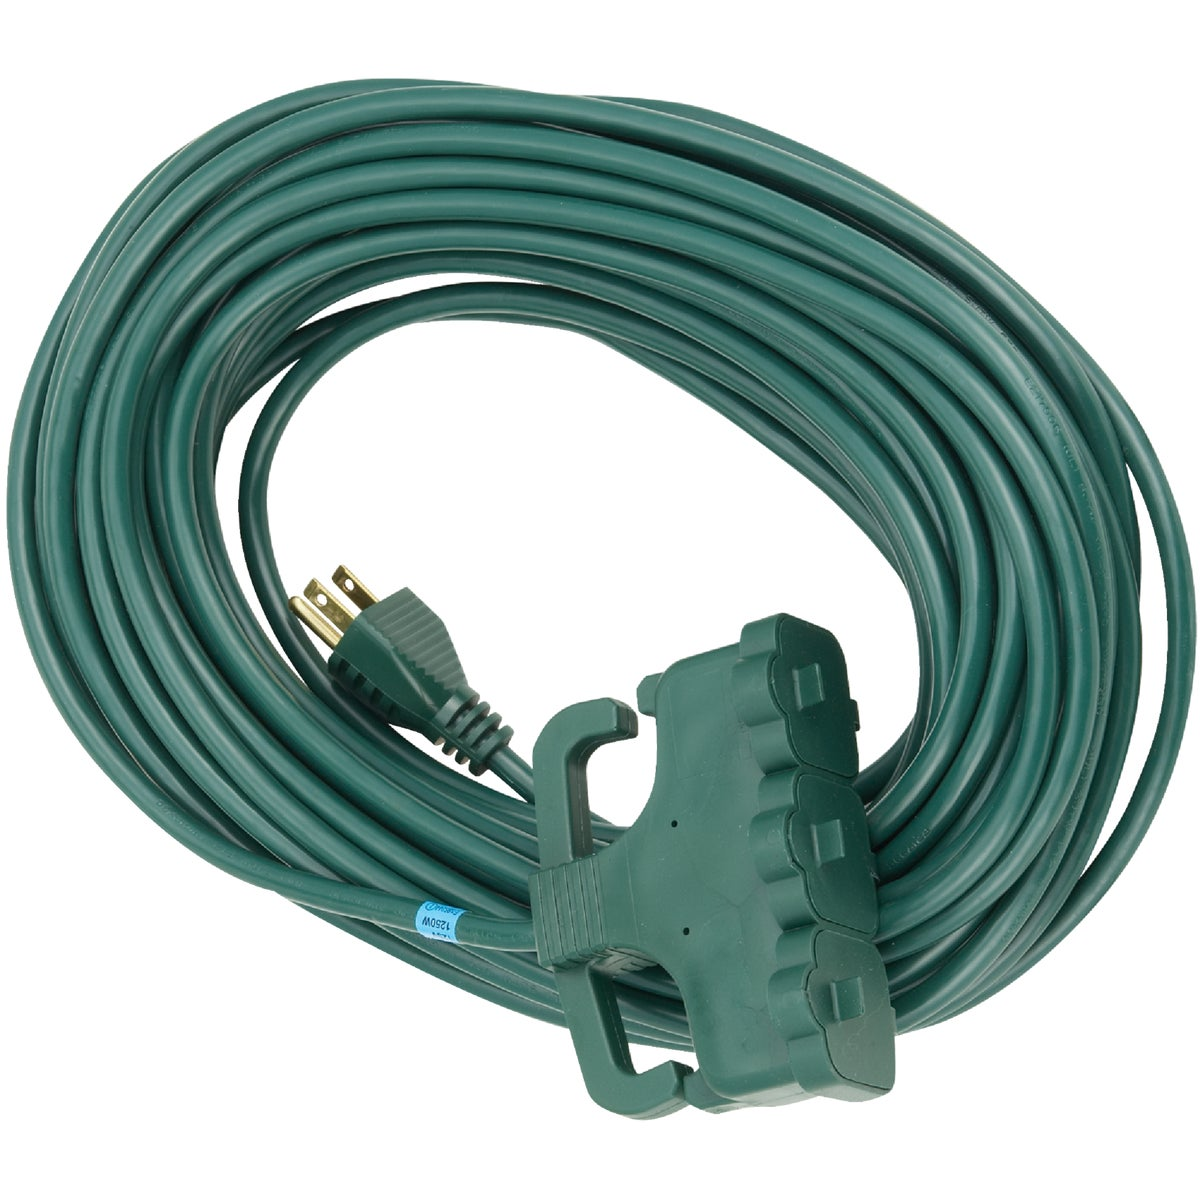 70' 16/3GRN TRI TAP CORD - OP-JTW163-70X-GR by Do it Best